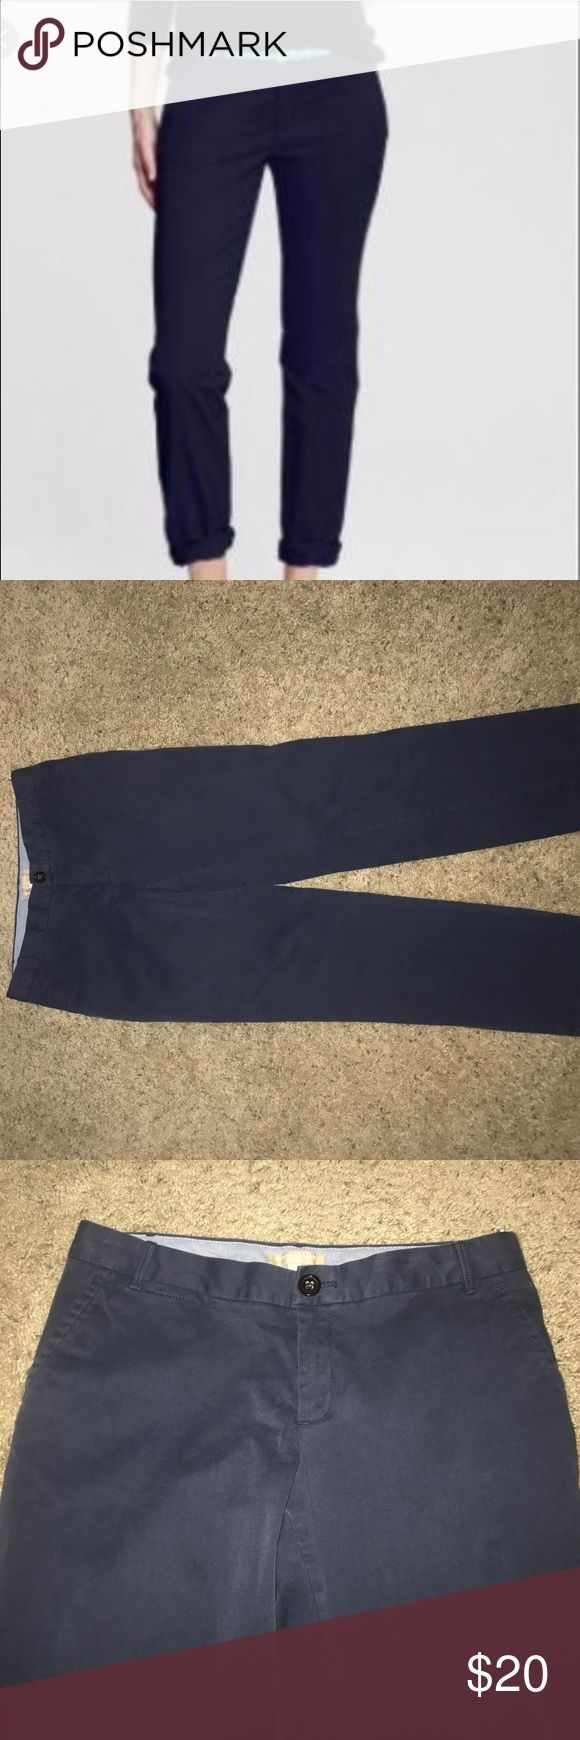 Banana Republic city chino navy blue khakis sz 6 Nice pair of khakis. Banana Republic has wonderful dress pants! They are used color is lightly faded Banana Republic Pants Trousers